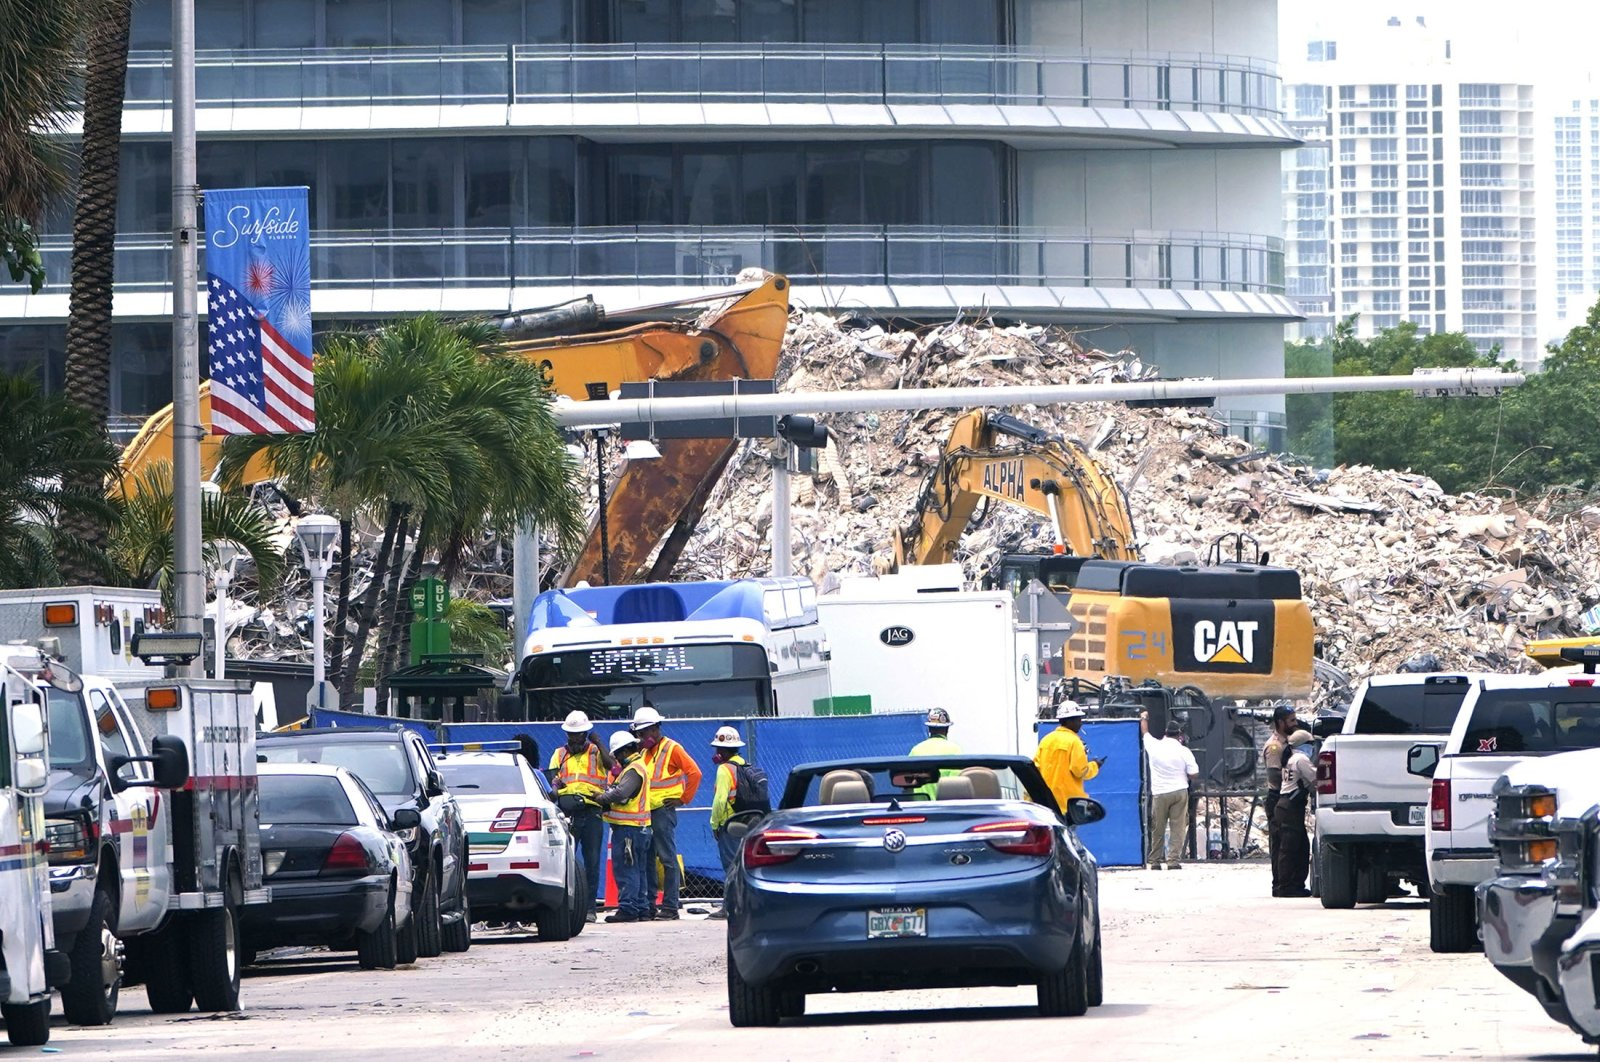 Crews work in the rubble of the Champlain Towers South building, as removal and recovery work continues at the site of the partially collapsed condo building in Surfside, Florida, U.S., July 13, 2021. (AP Photo)